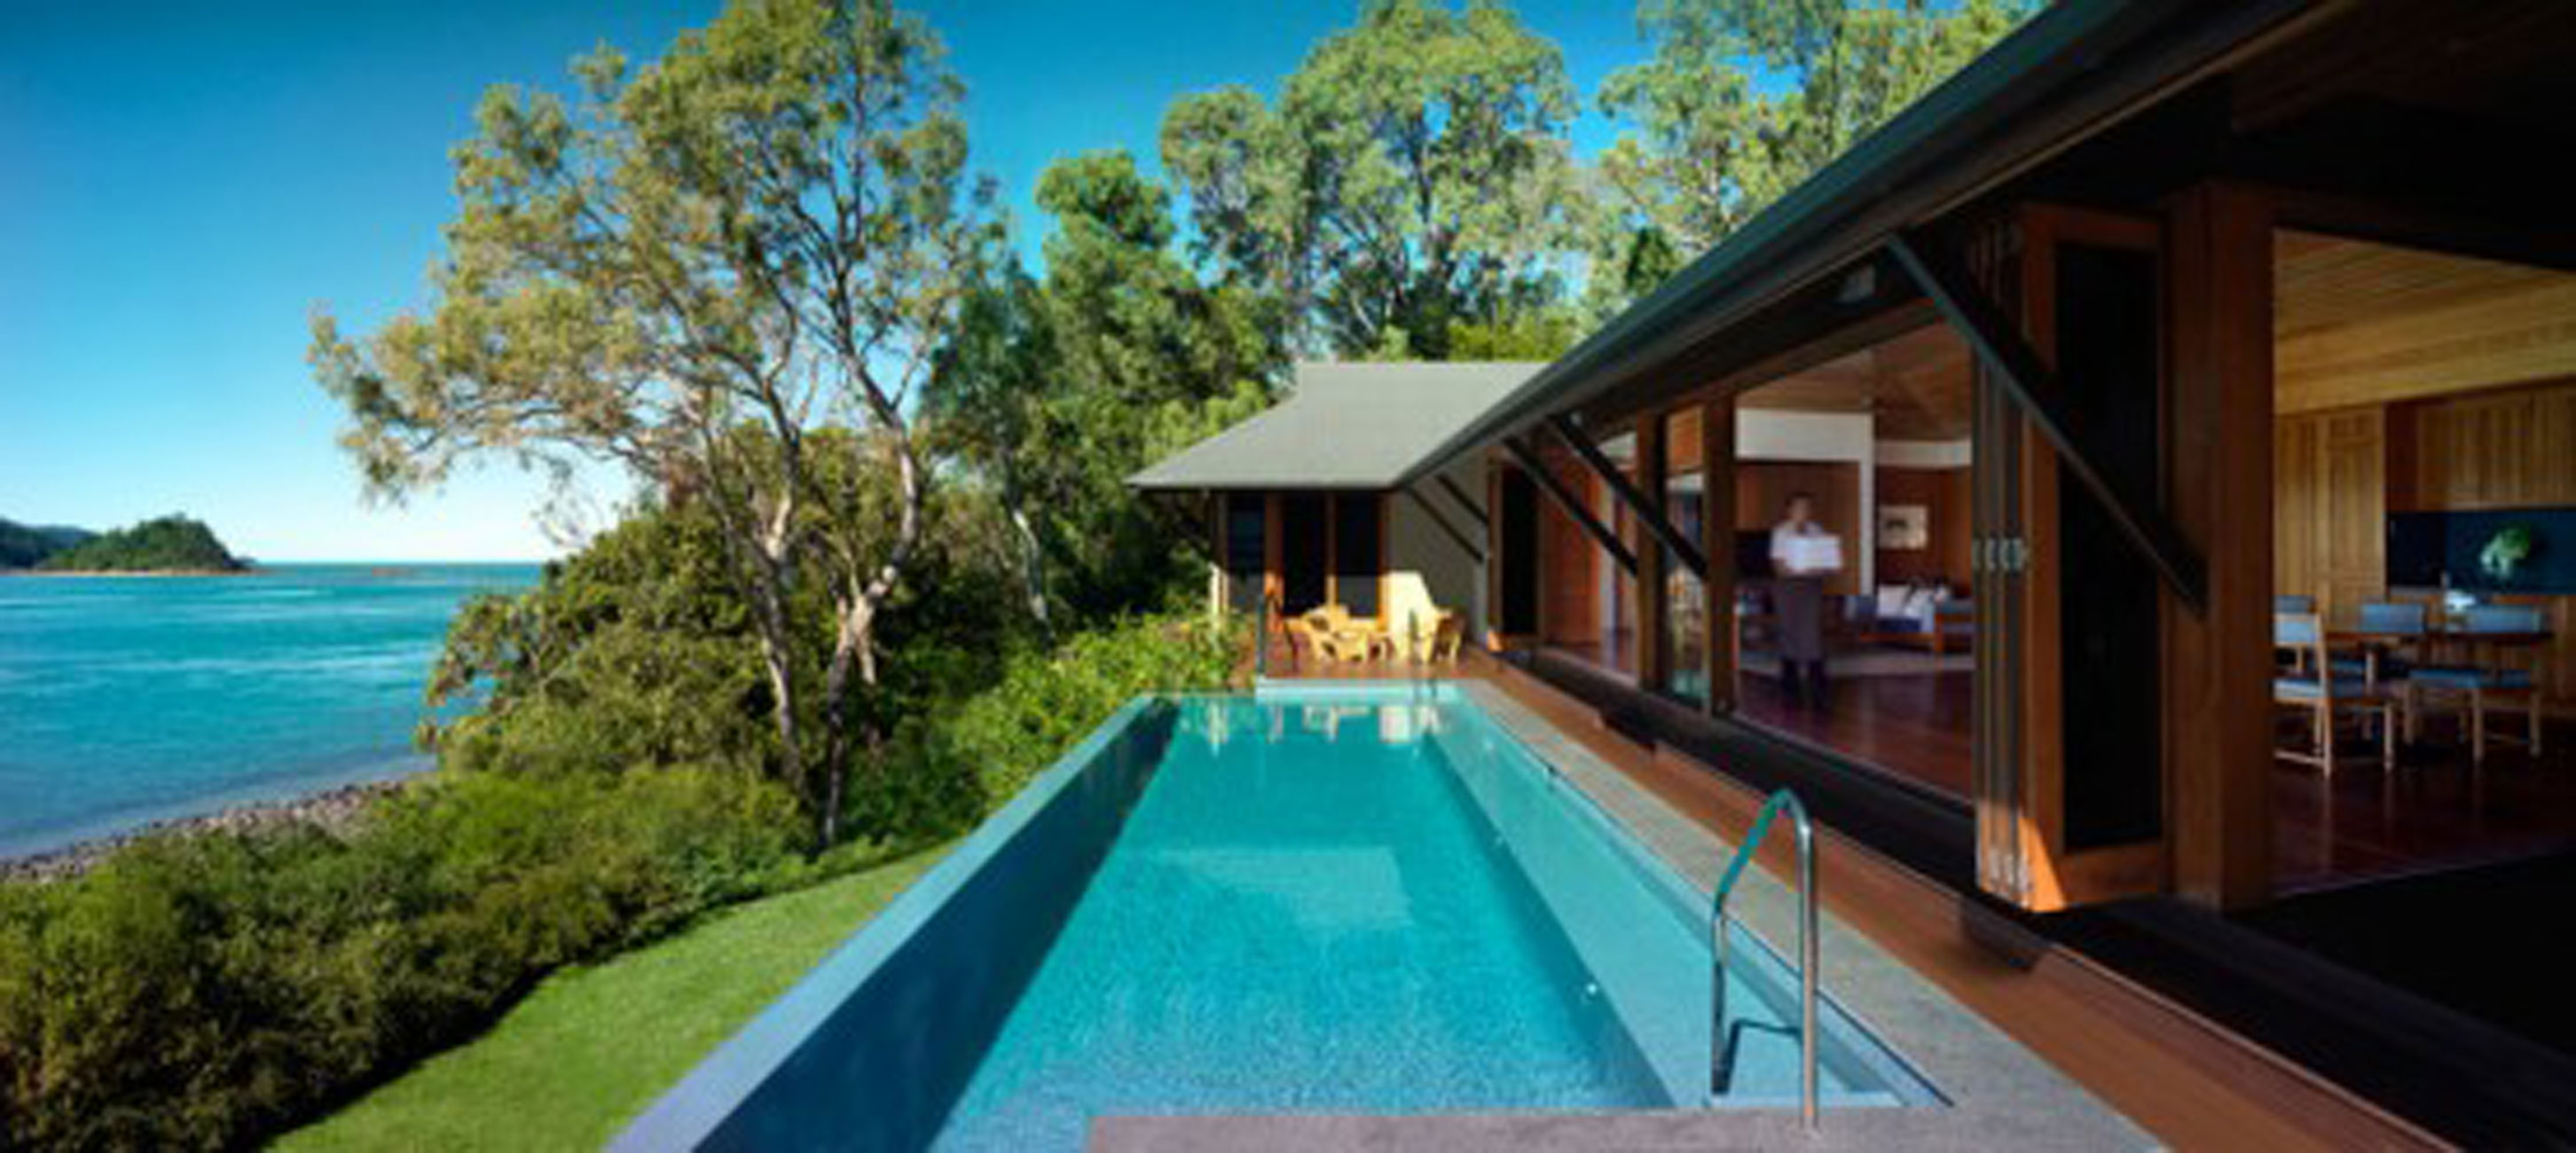 Best luxury hotels in australia top 10 ealuxe com for Great luxury hotels